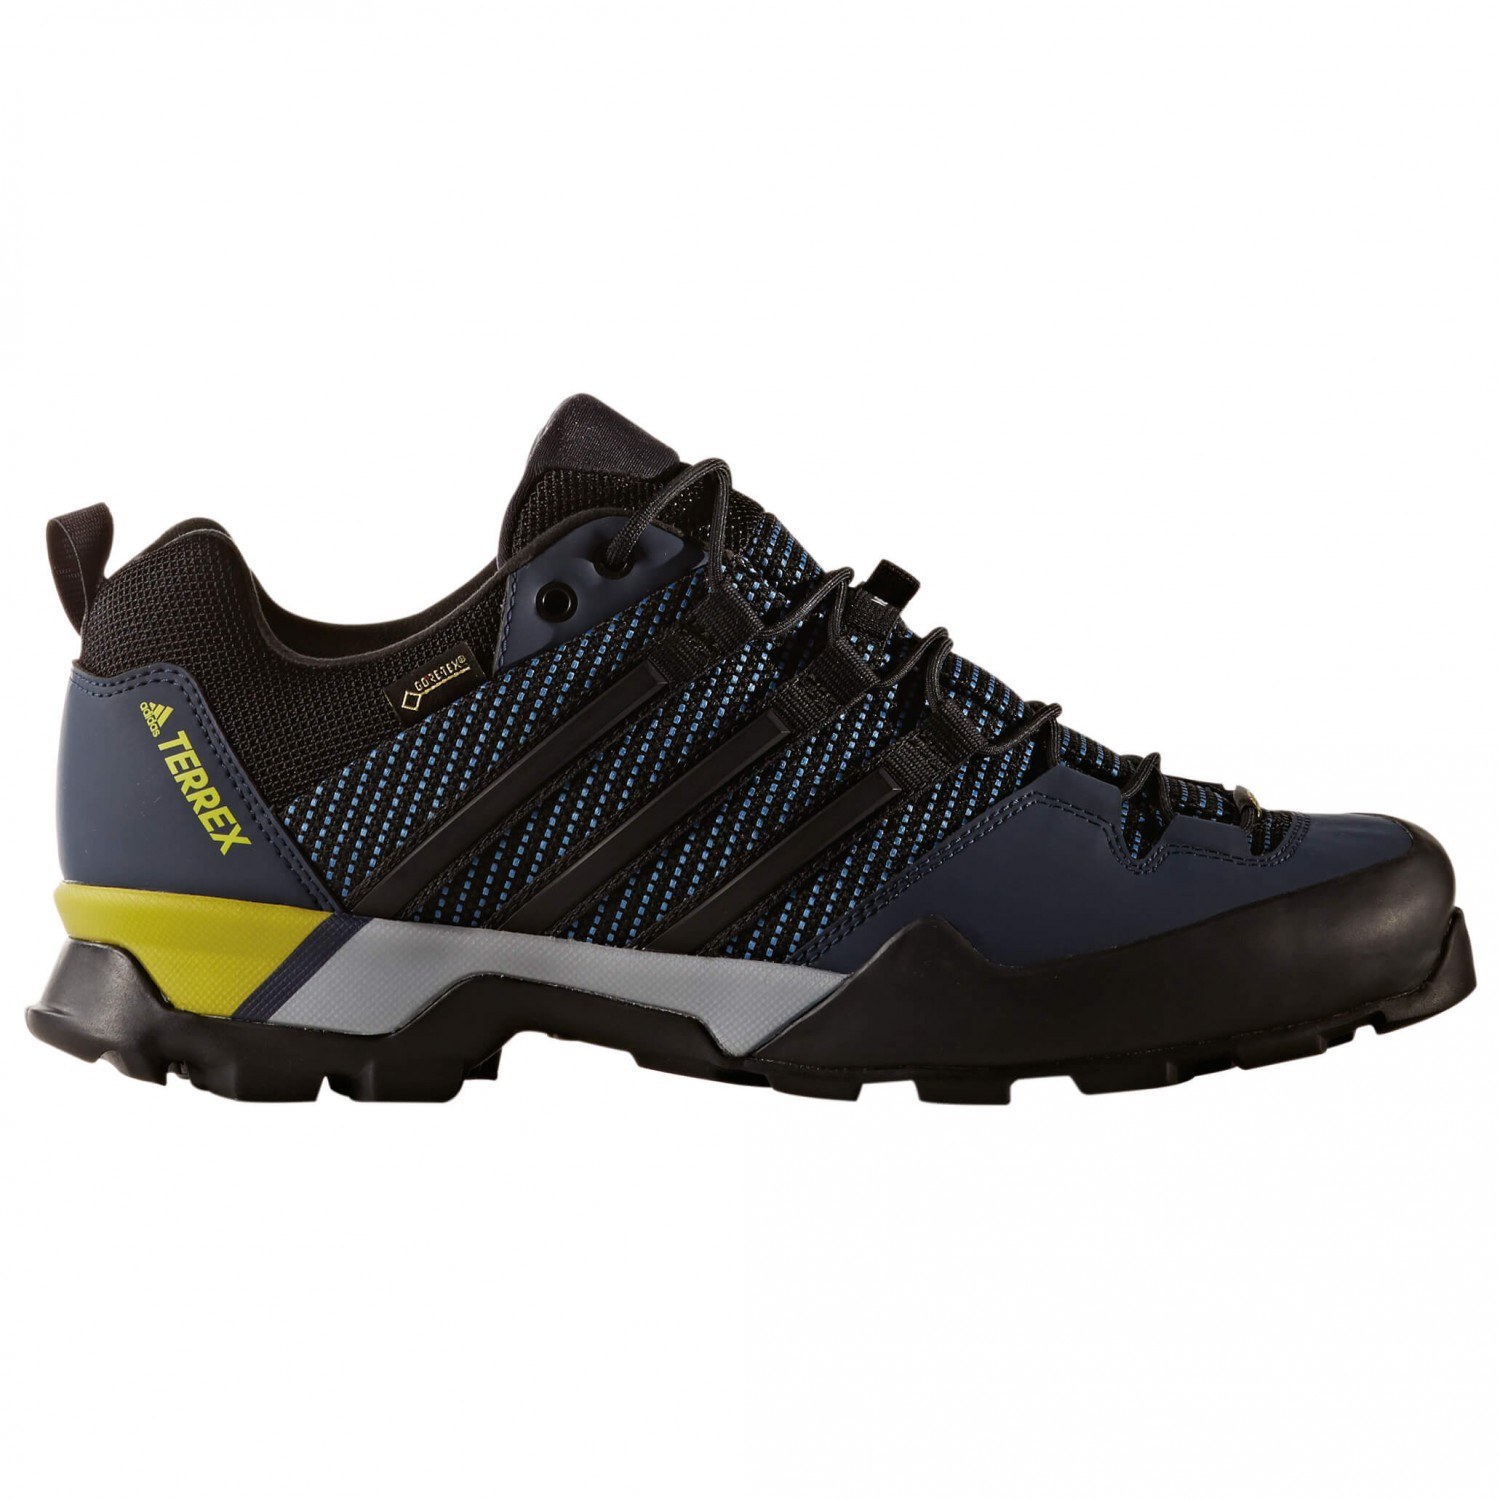 Adidas Gore Tex Outdoor Shoes